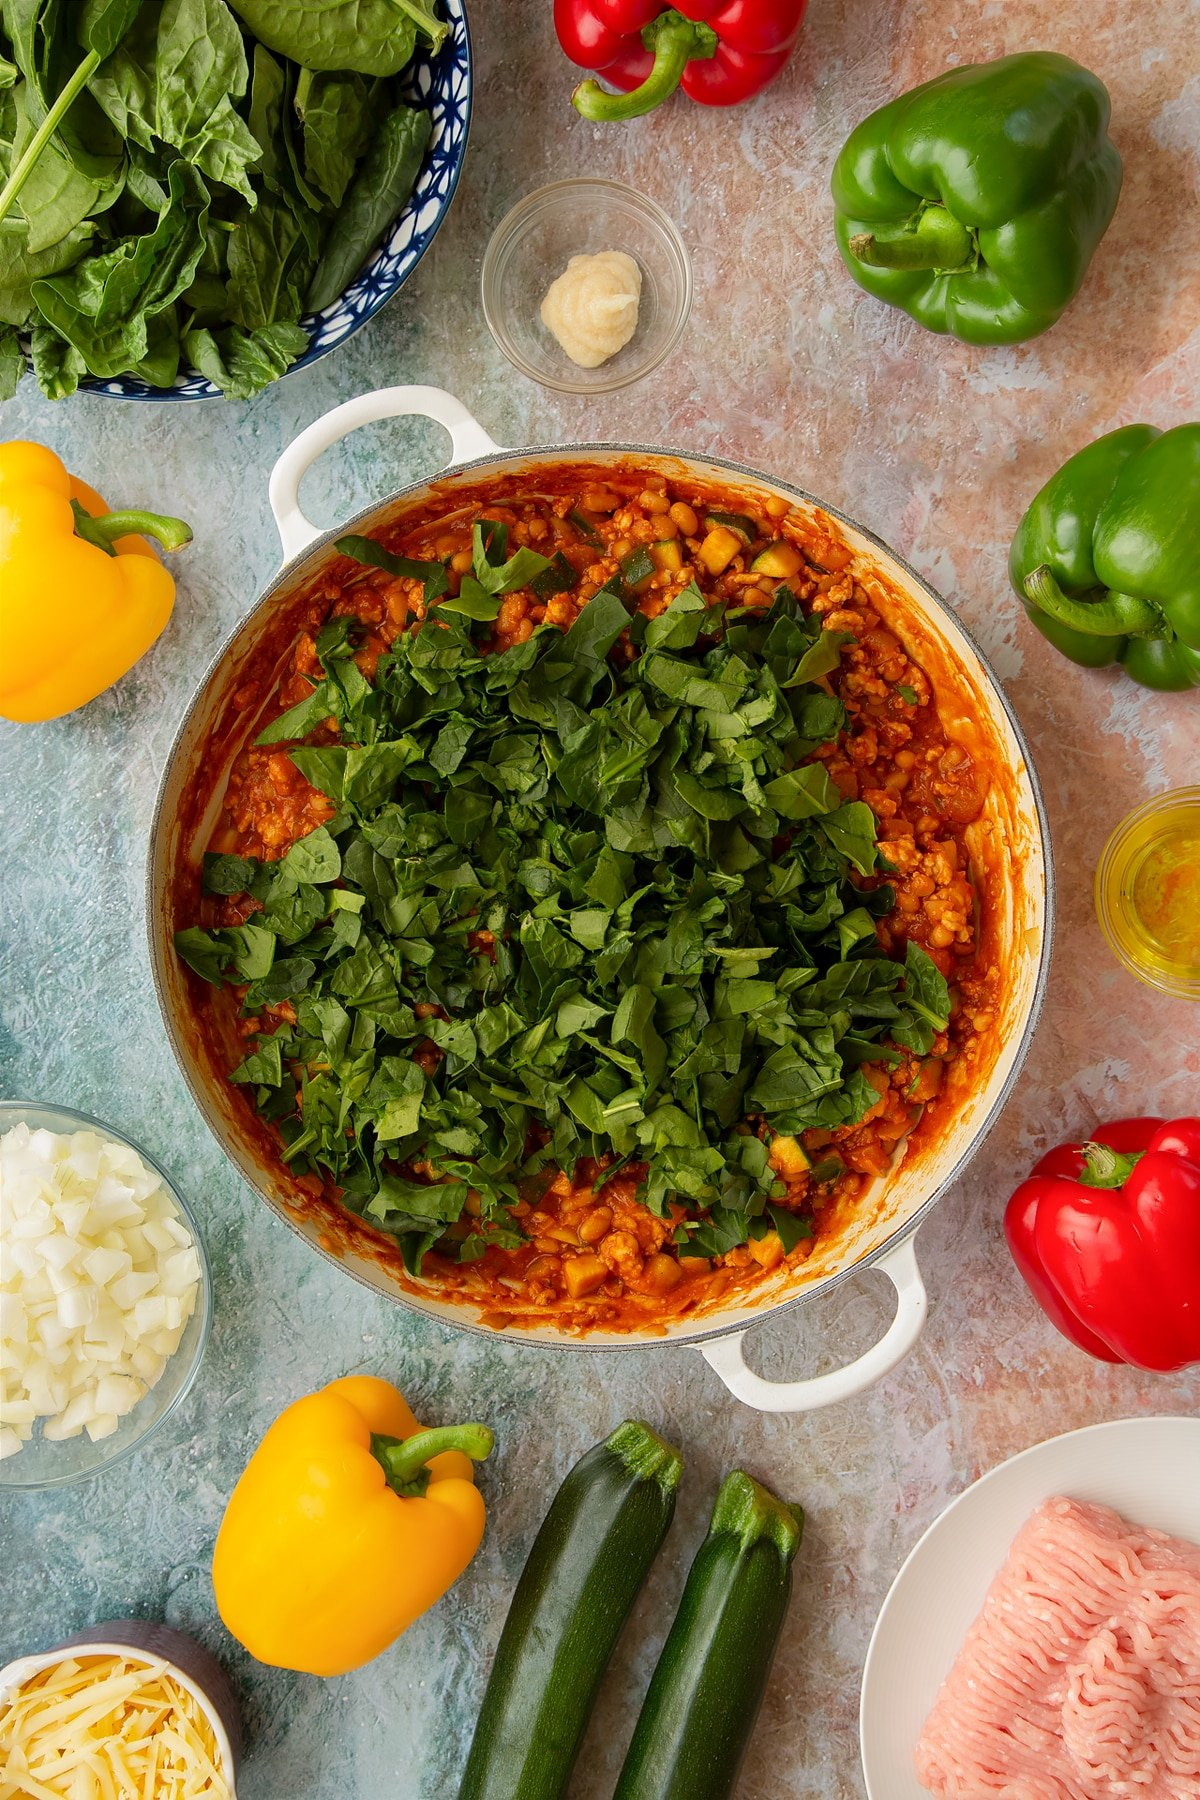 Vegetables, turkey mince and baked beans simmered in a spicy tomato sauce in a large shallow pan with spinach on top. Ingredients to make baked bean stuffed peppers surround the pan.